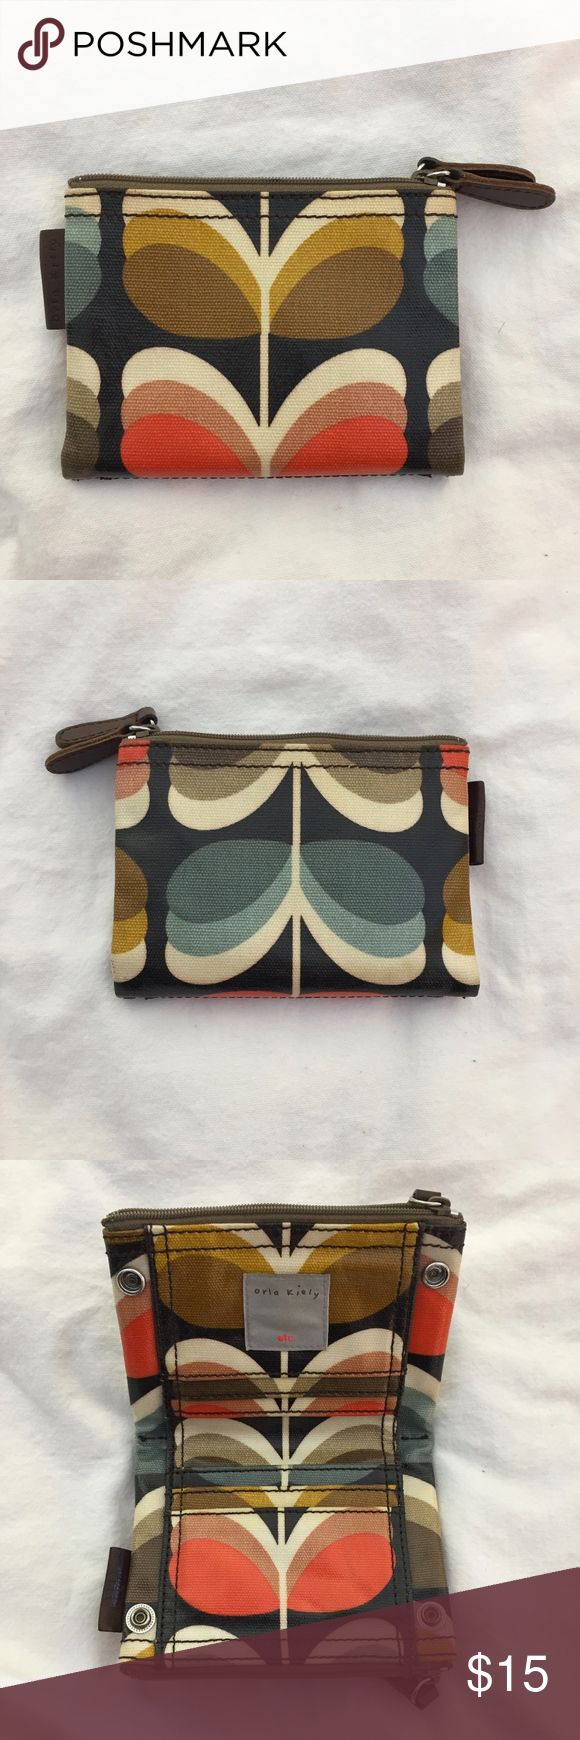 Orla Kiely Wallet Mod Stem Print GUC For sale is a trendy laminated wallet from Orla Kiely in a retro stem and leaf print. Has lots of interior pockets and snaps to keep it securely closed. In good used condition. From a nonsmoking home. Thanks for looking. Orla Kiely Bags Wallets